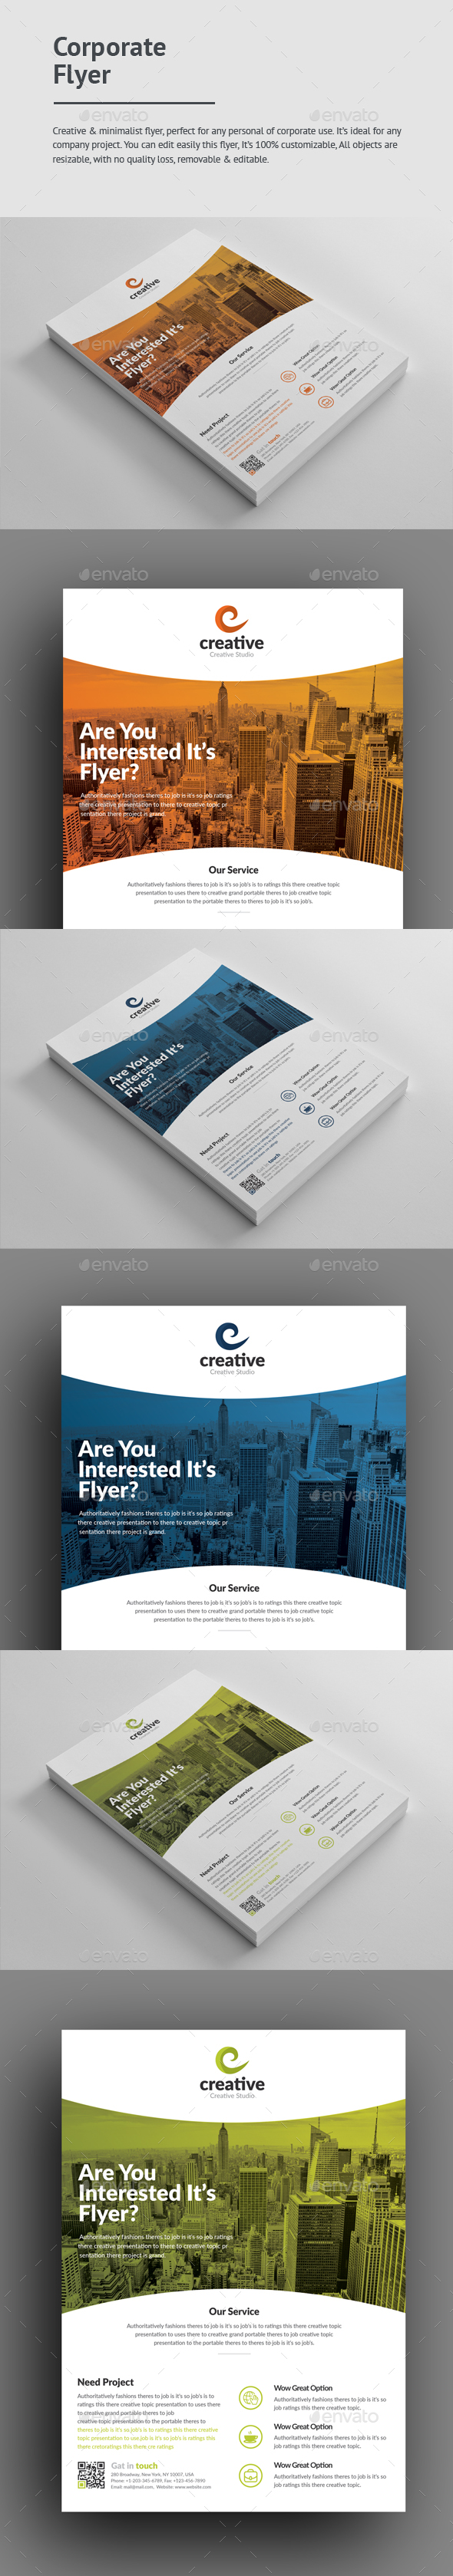 #Corporate #Flyer - Corporate Flyers Download here: https://graphicriver.net/item/corporate-flyer/19260556?ref=alena994